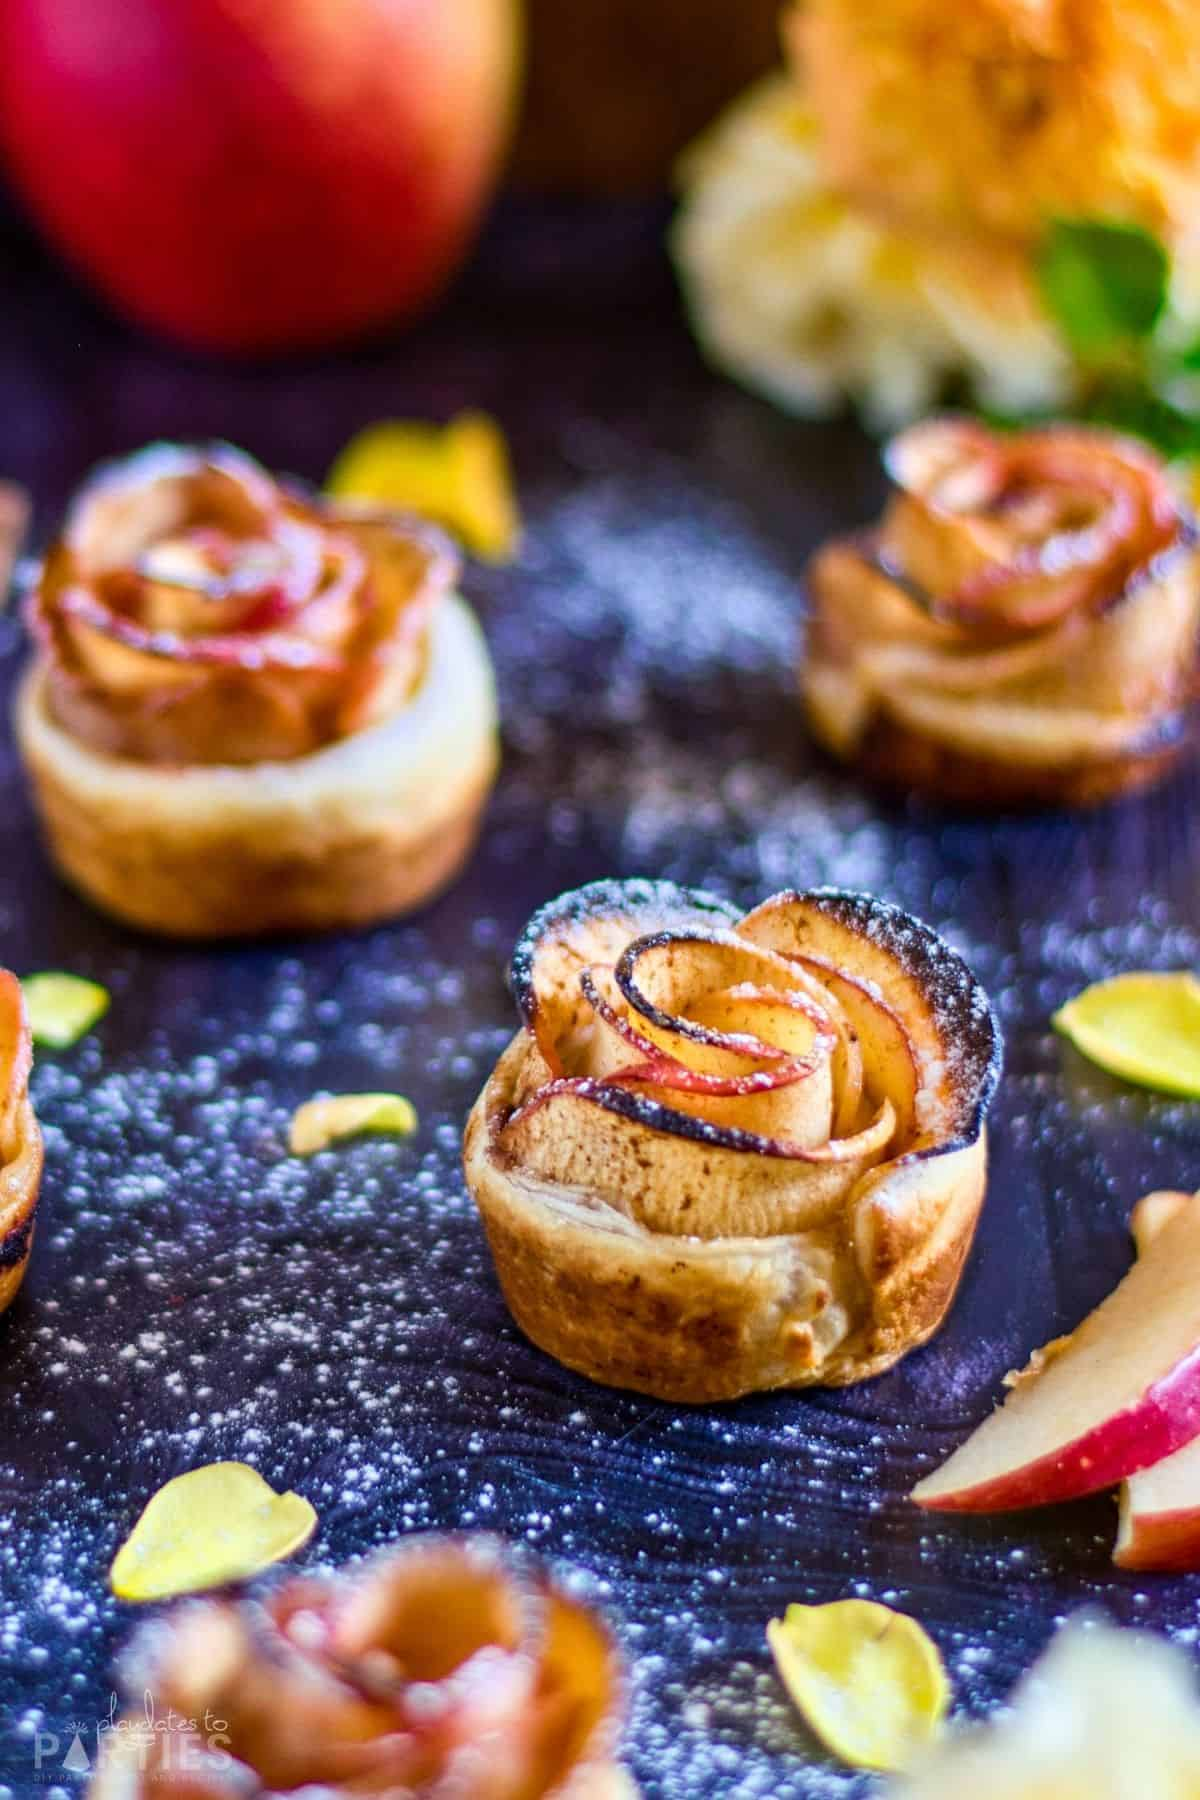 Mini apple tarts on a dark surface surrounded by flower petals